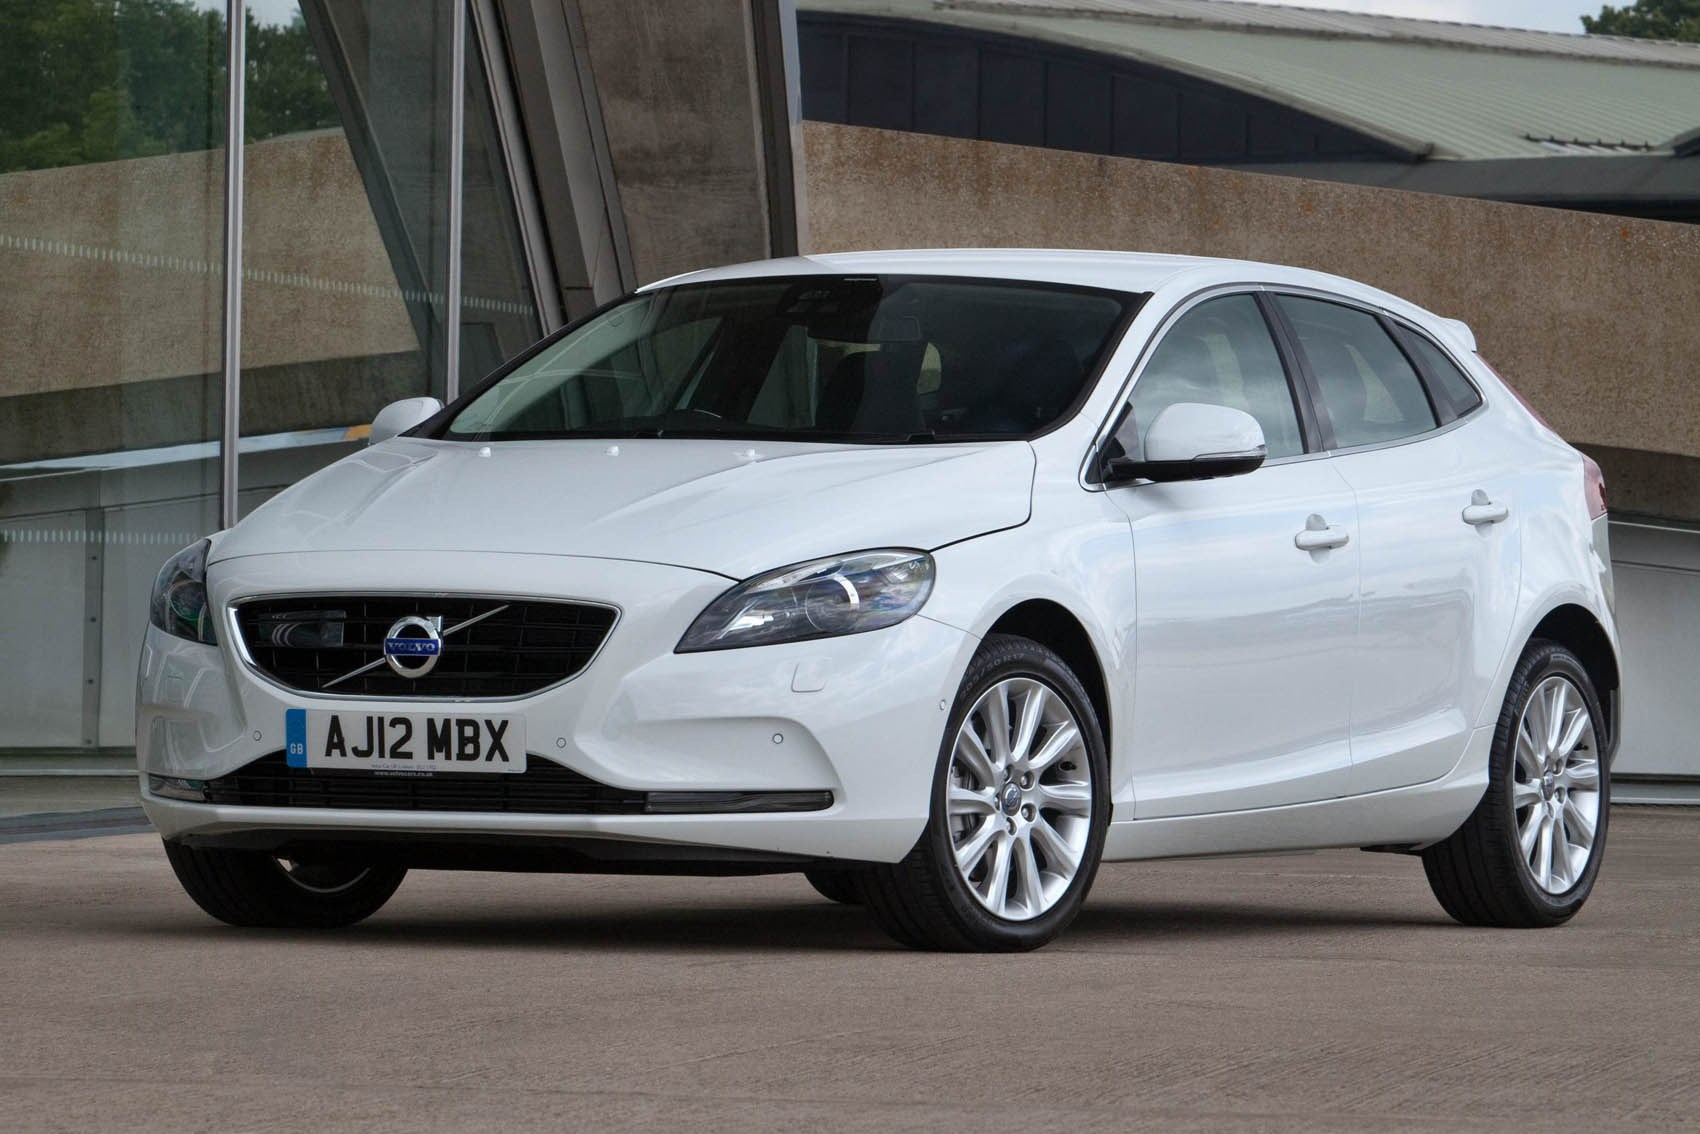 Safest Small Family Cars Parkers Vauxhall Volvo V40